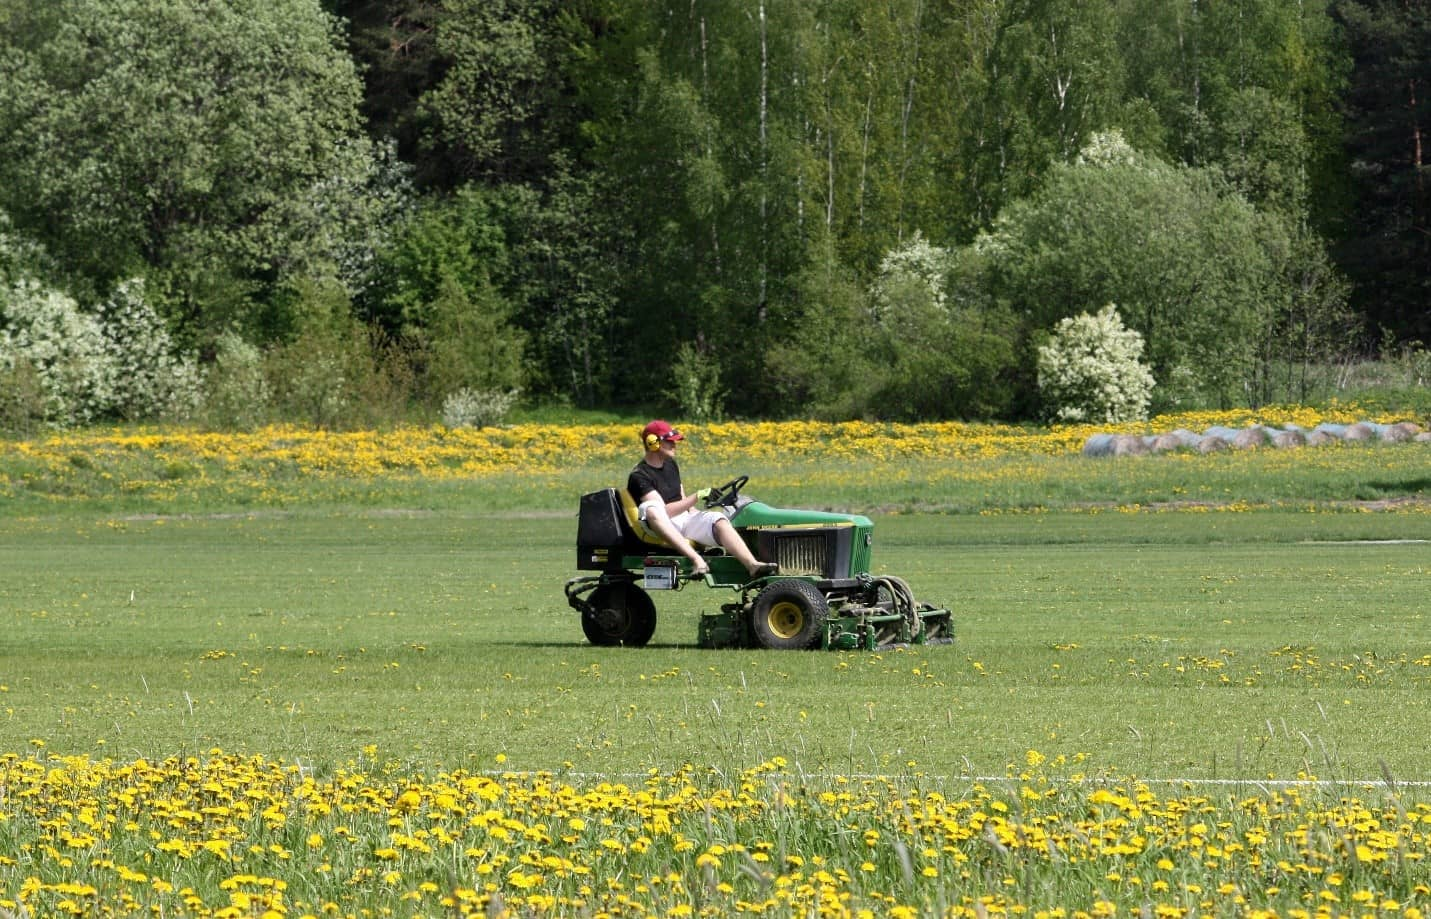 best-riding-lawn-mower-for-sale-reviews-2017-1